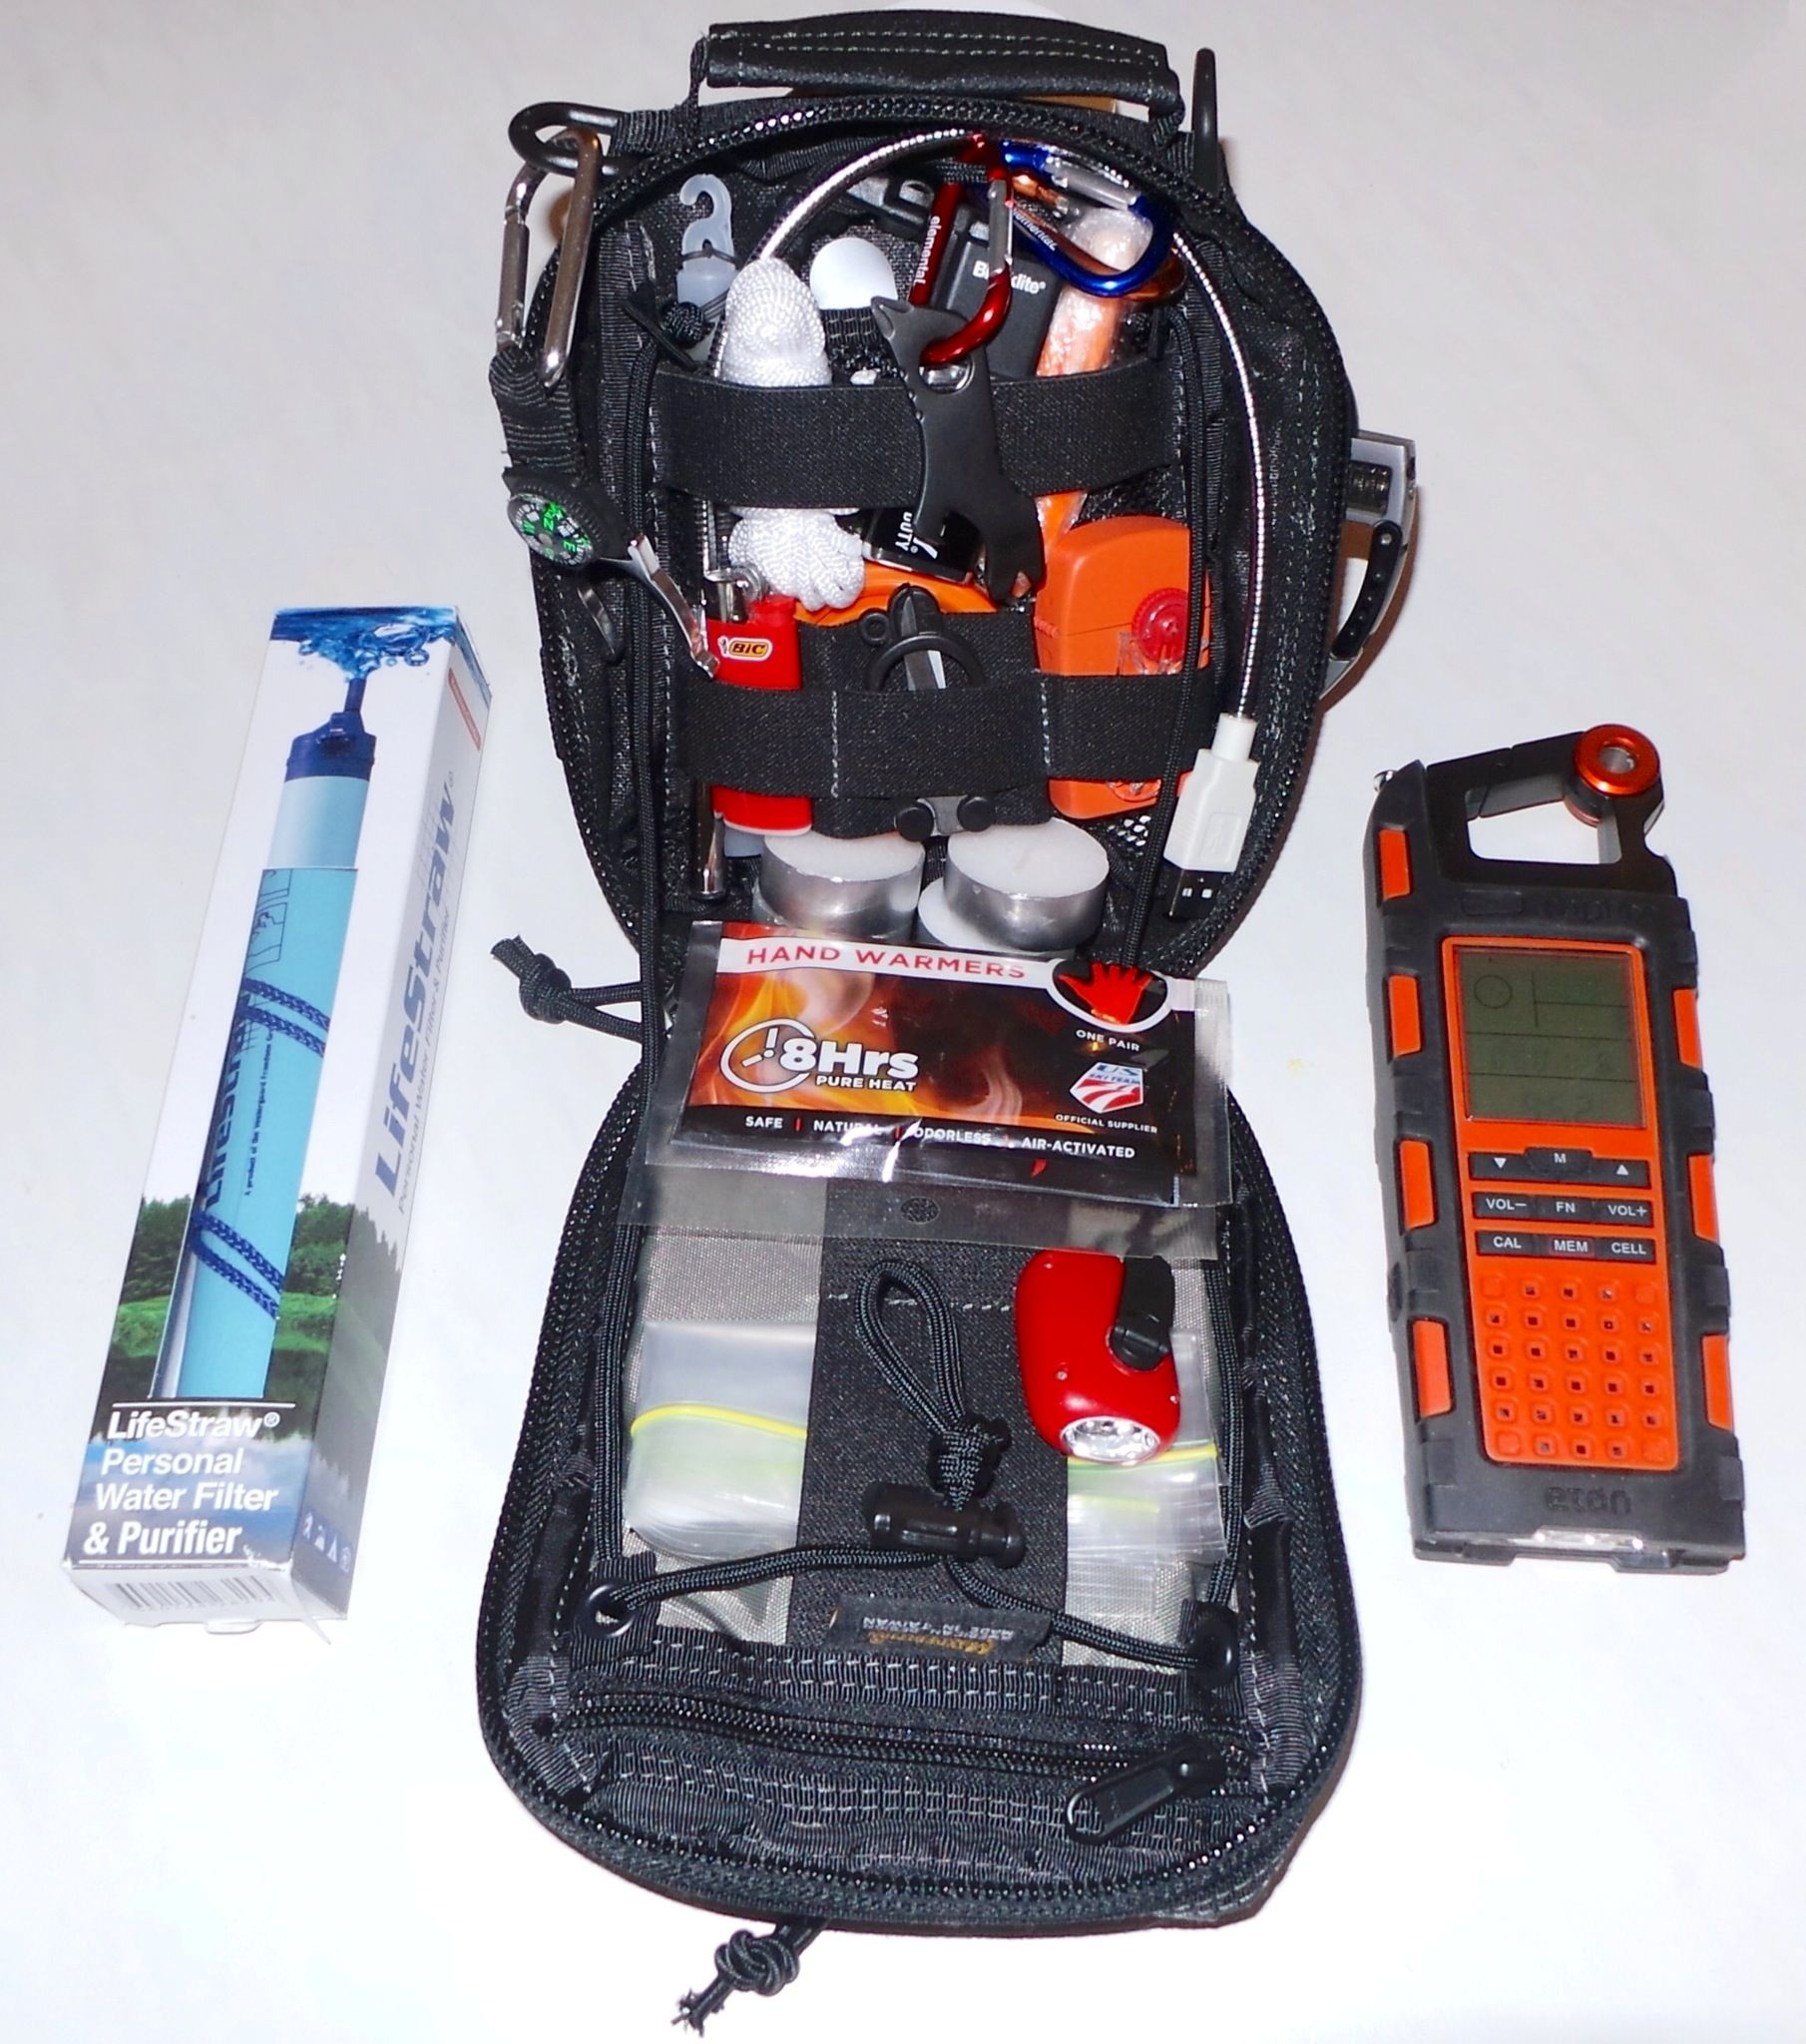 My EDC: - Maxpedition FR-1 Pouch - Bic lighter - BlockLite